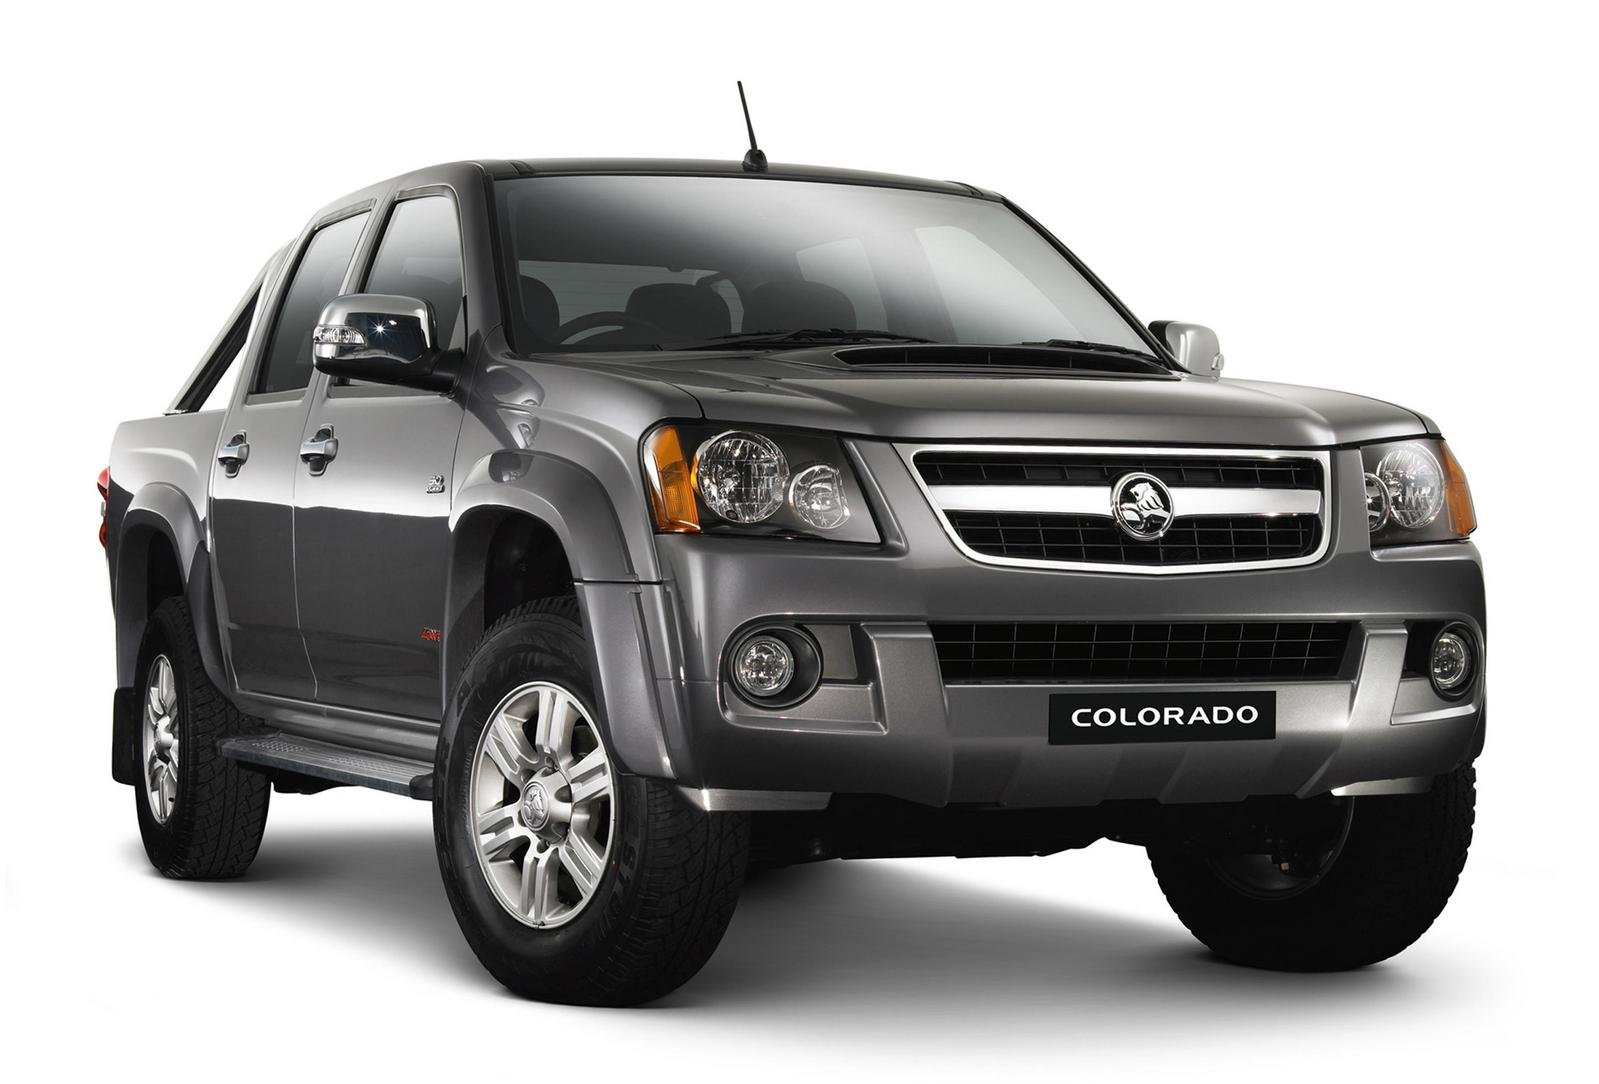 2008 Holden Colorado Review - Top Speed